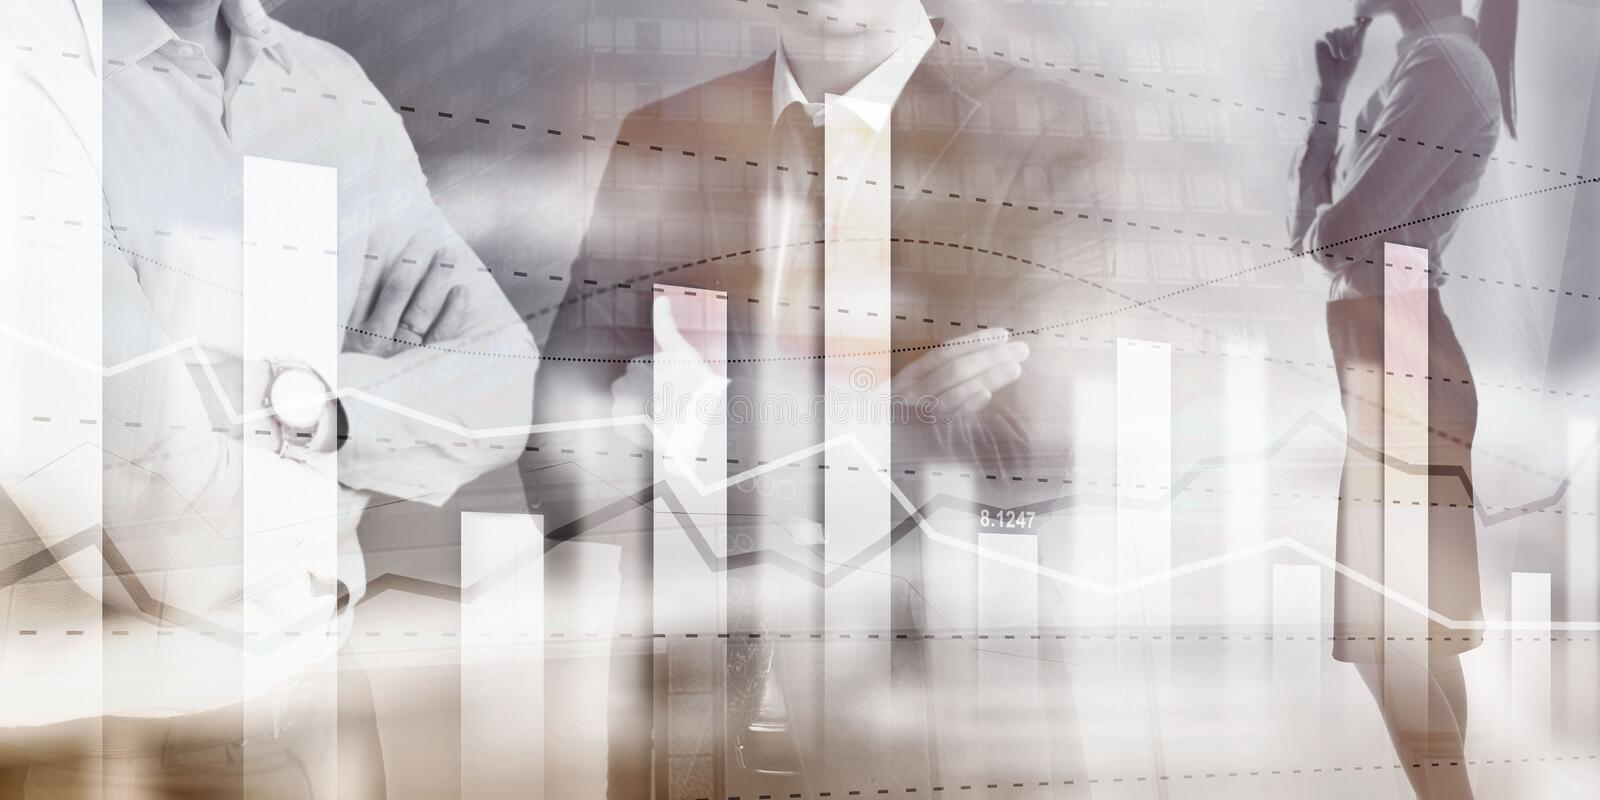 Business team traders investment planning and analyzing graph stock market trading with stock chart data.  royalty free stock photo